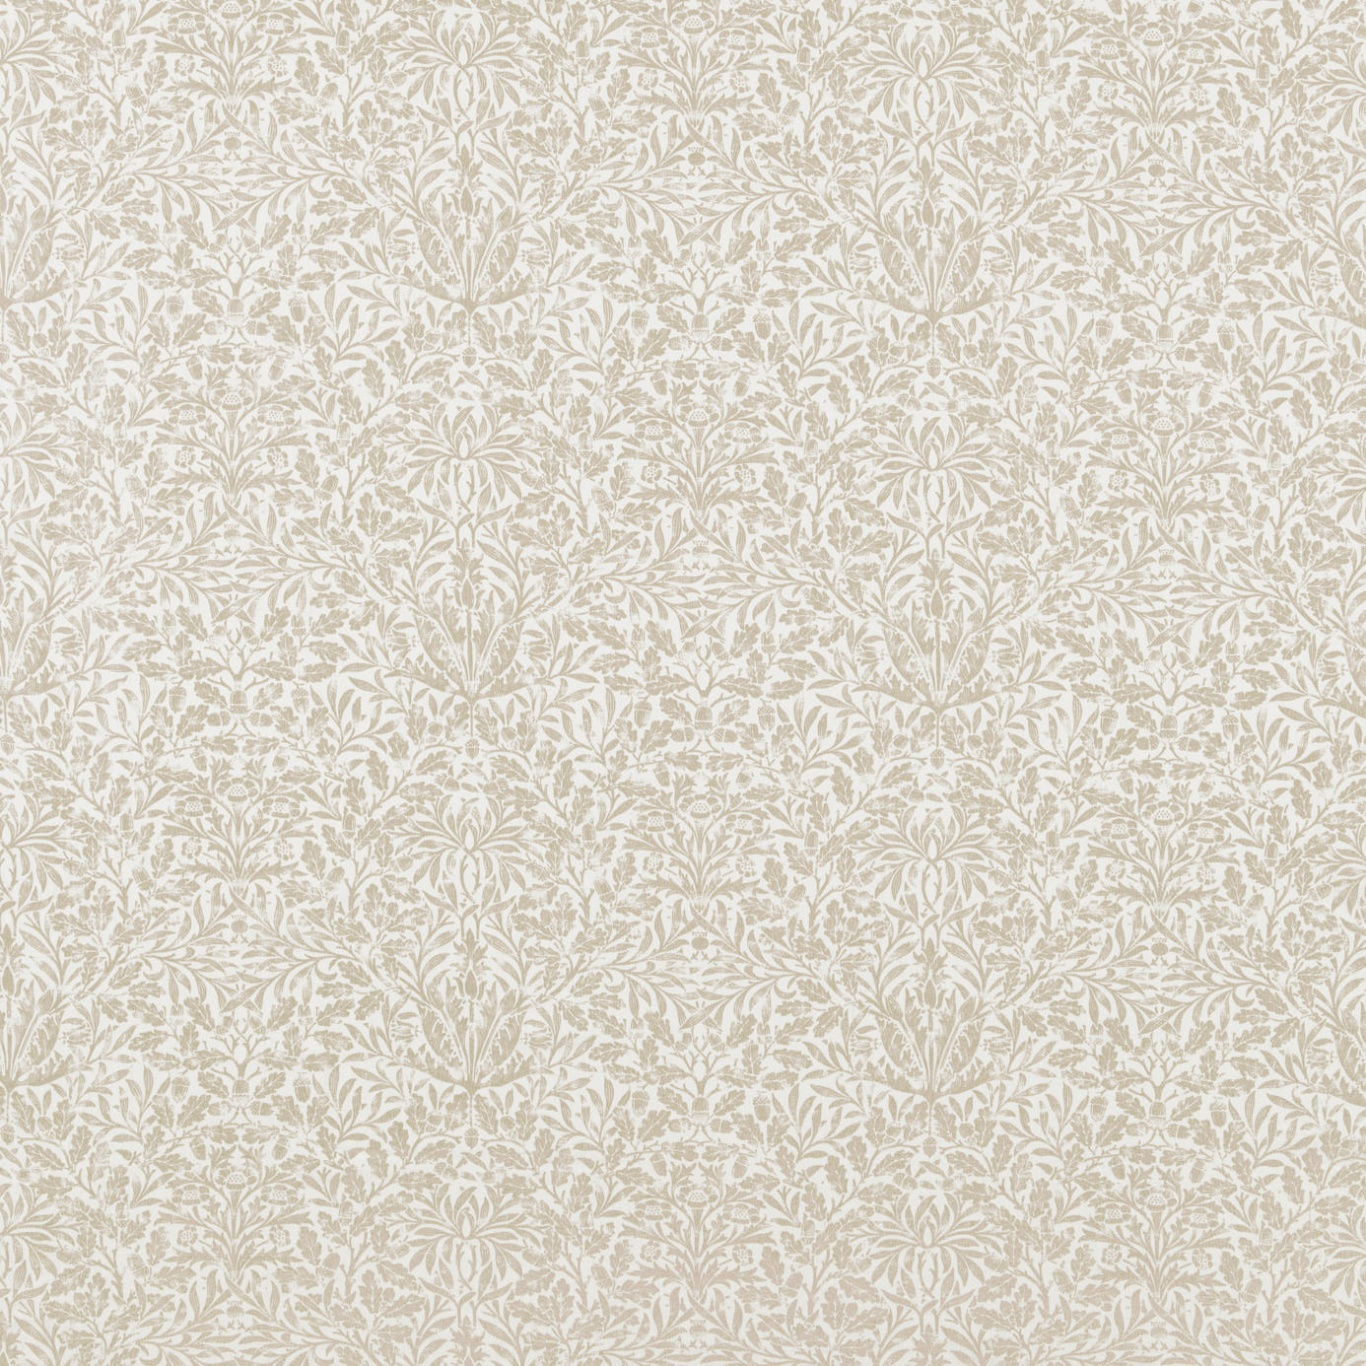 Image of Morris & Co Pure Acorn Linen Fabric 236062